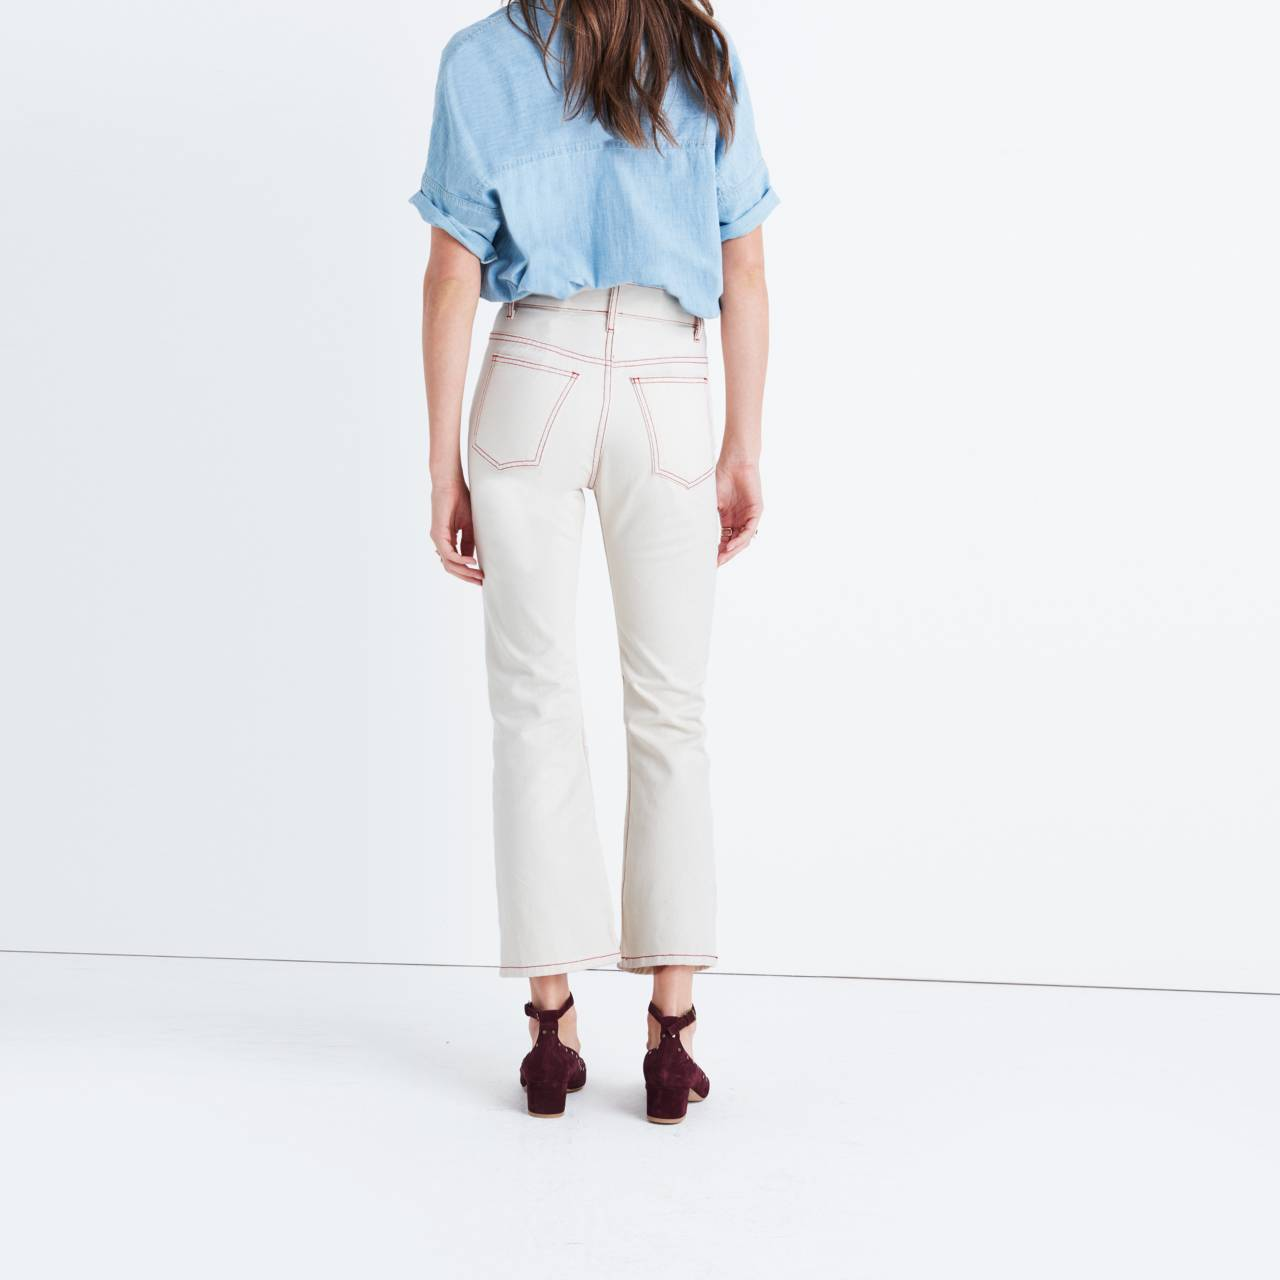 Caron Callahan™ Joni Five-Pocket Jeans in natural denim image 3